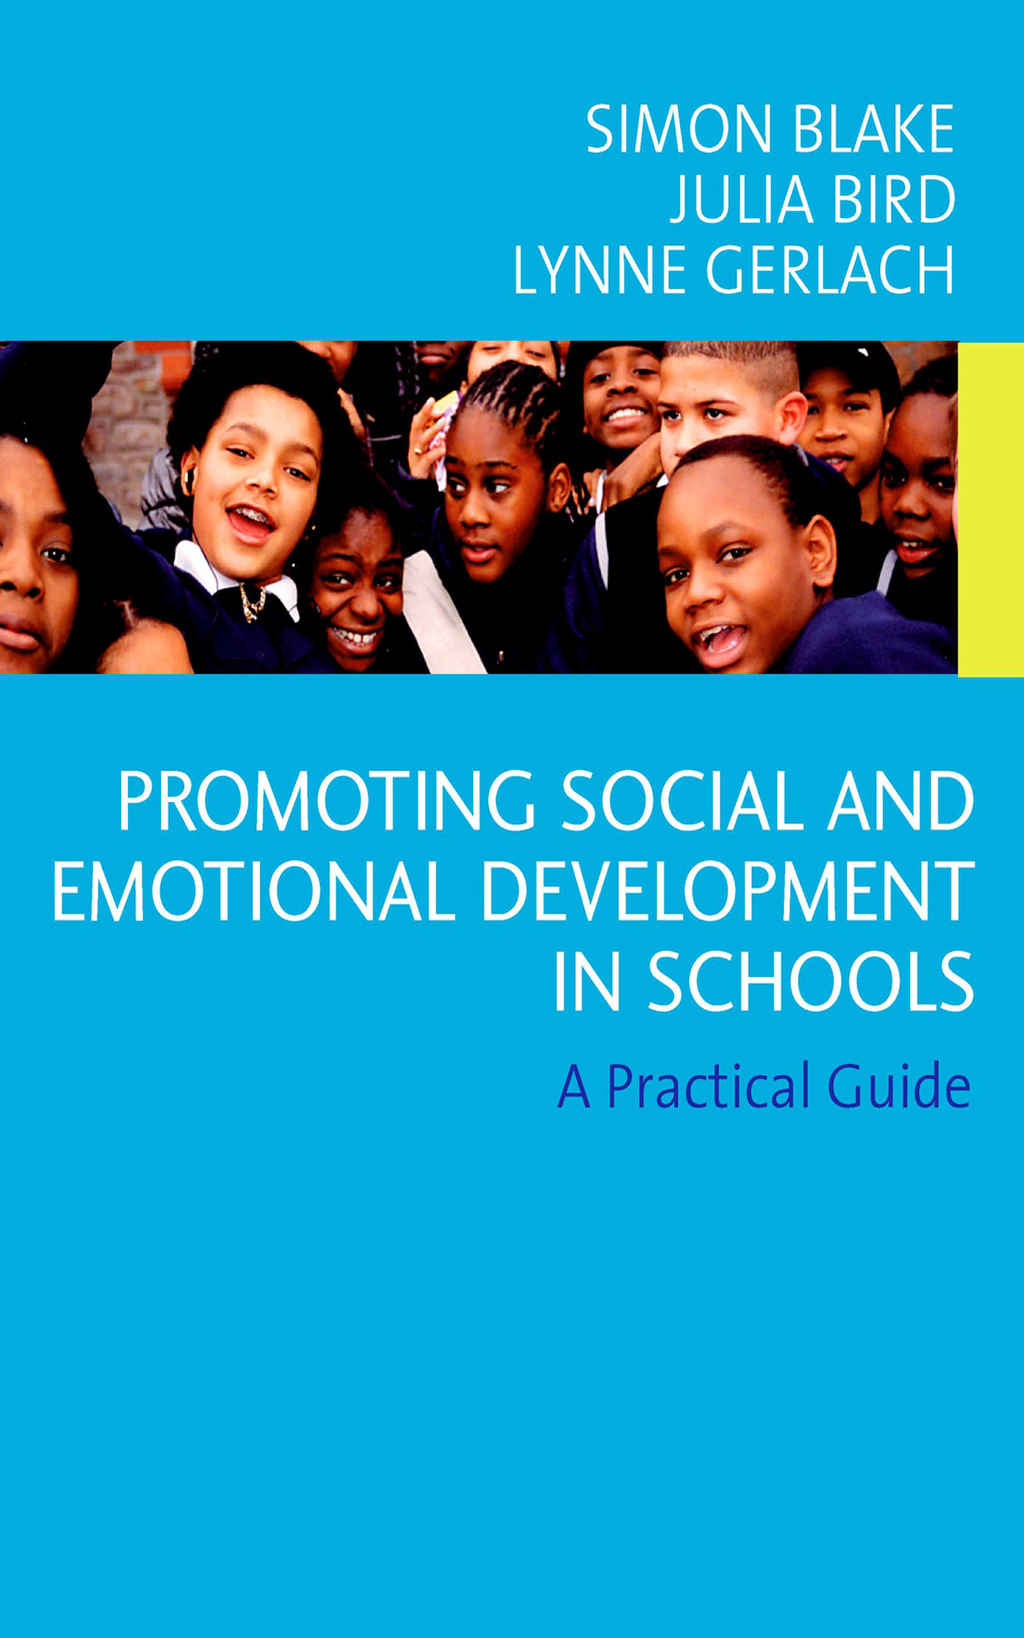 Promoting Emotional and Social Development in Schools A Practical Guide